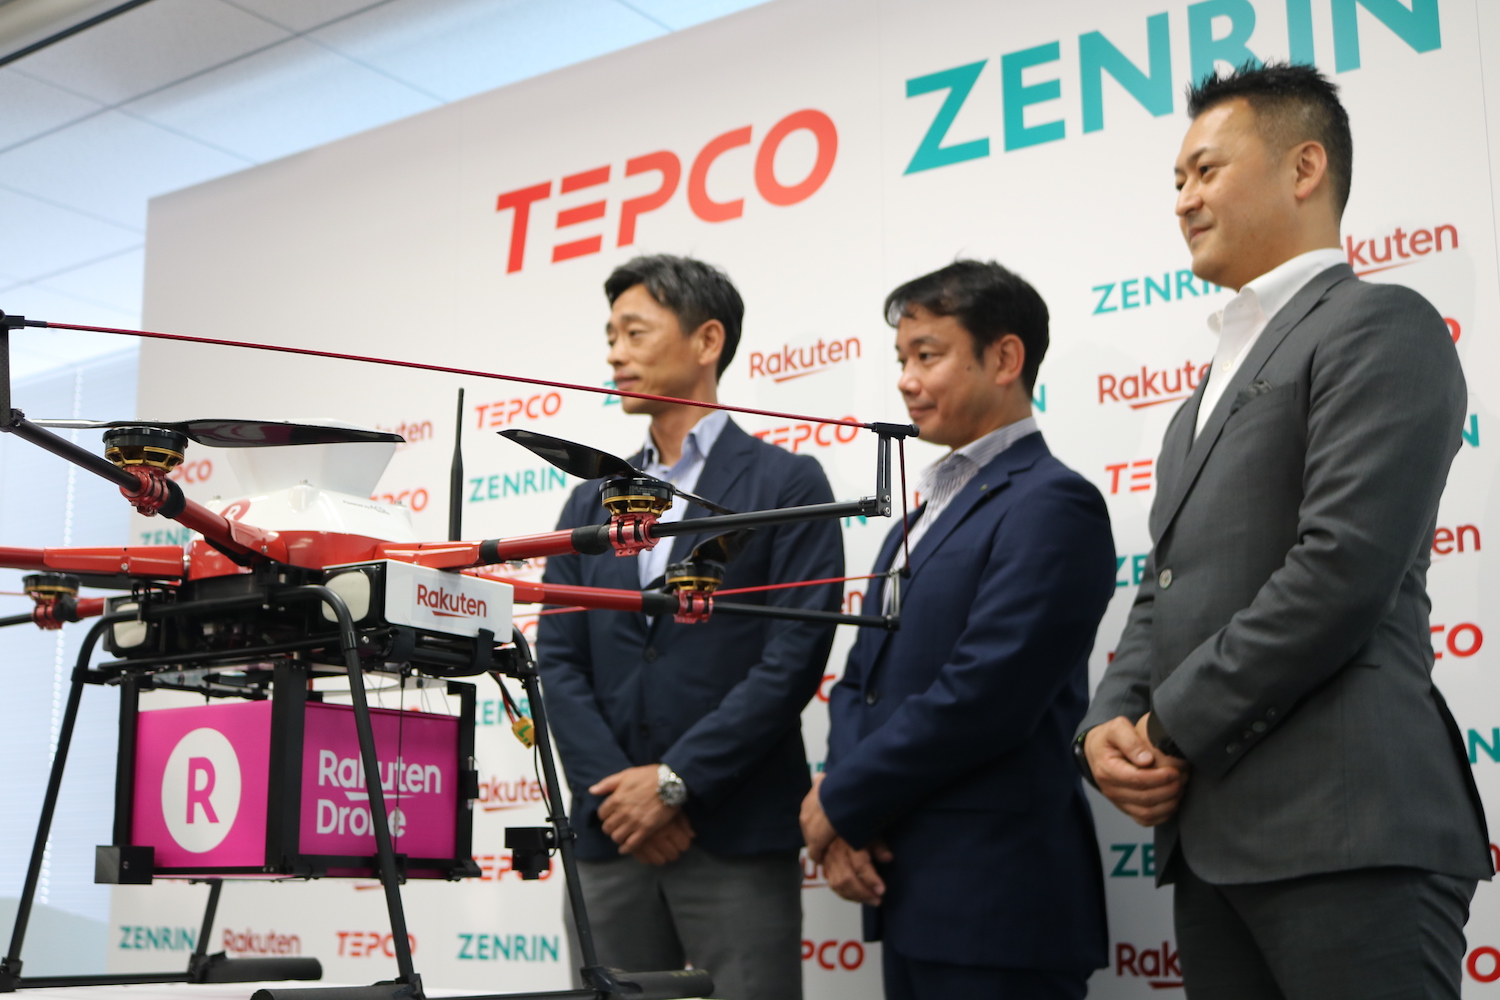 Rakuten has teamed up with the Tokyo Electric Power Company and Japanese mapping company Zenrin to develop a system of drone highways...